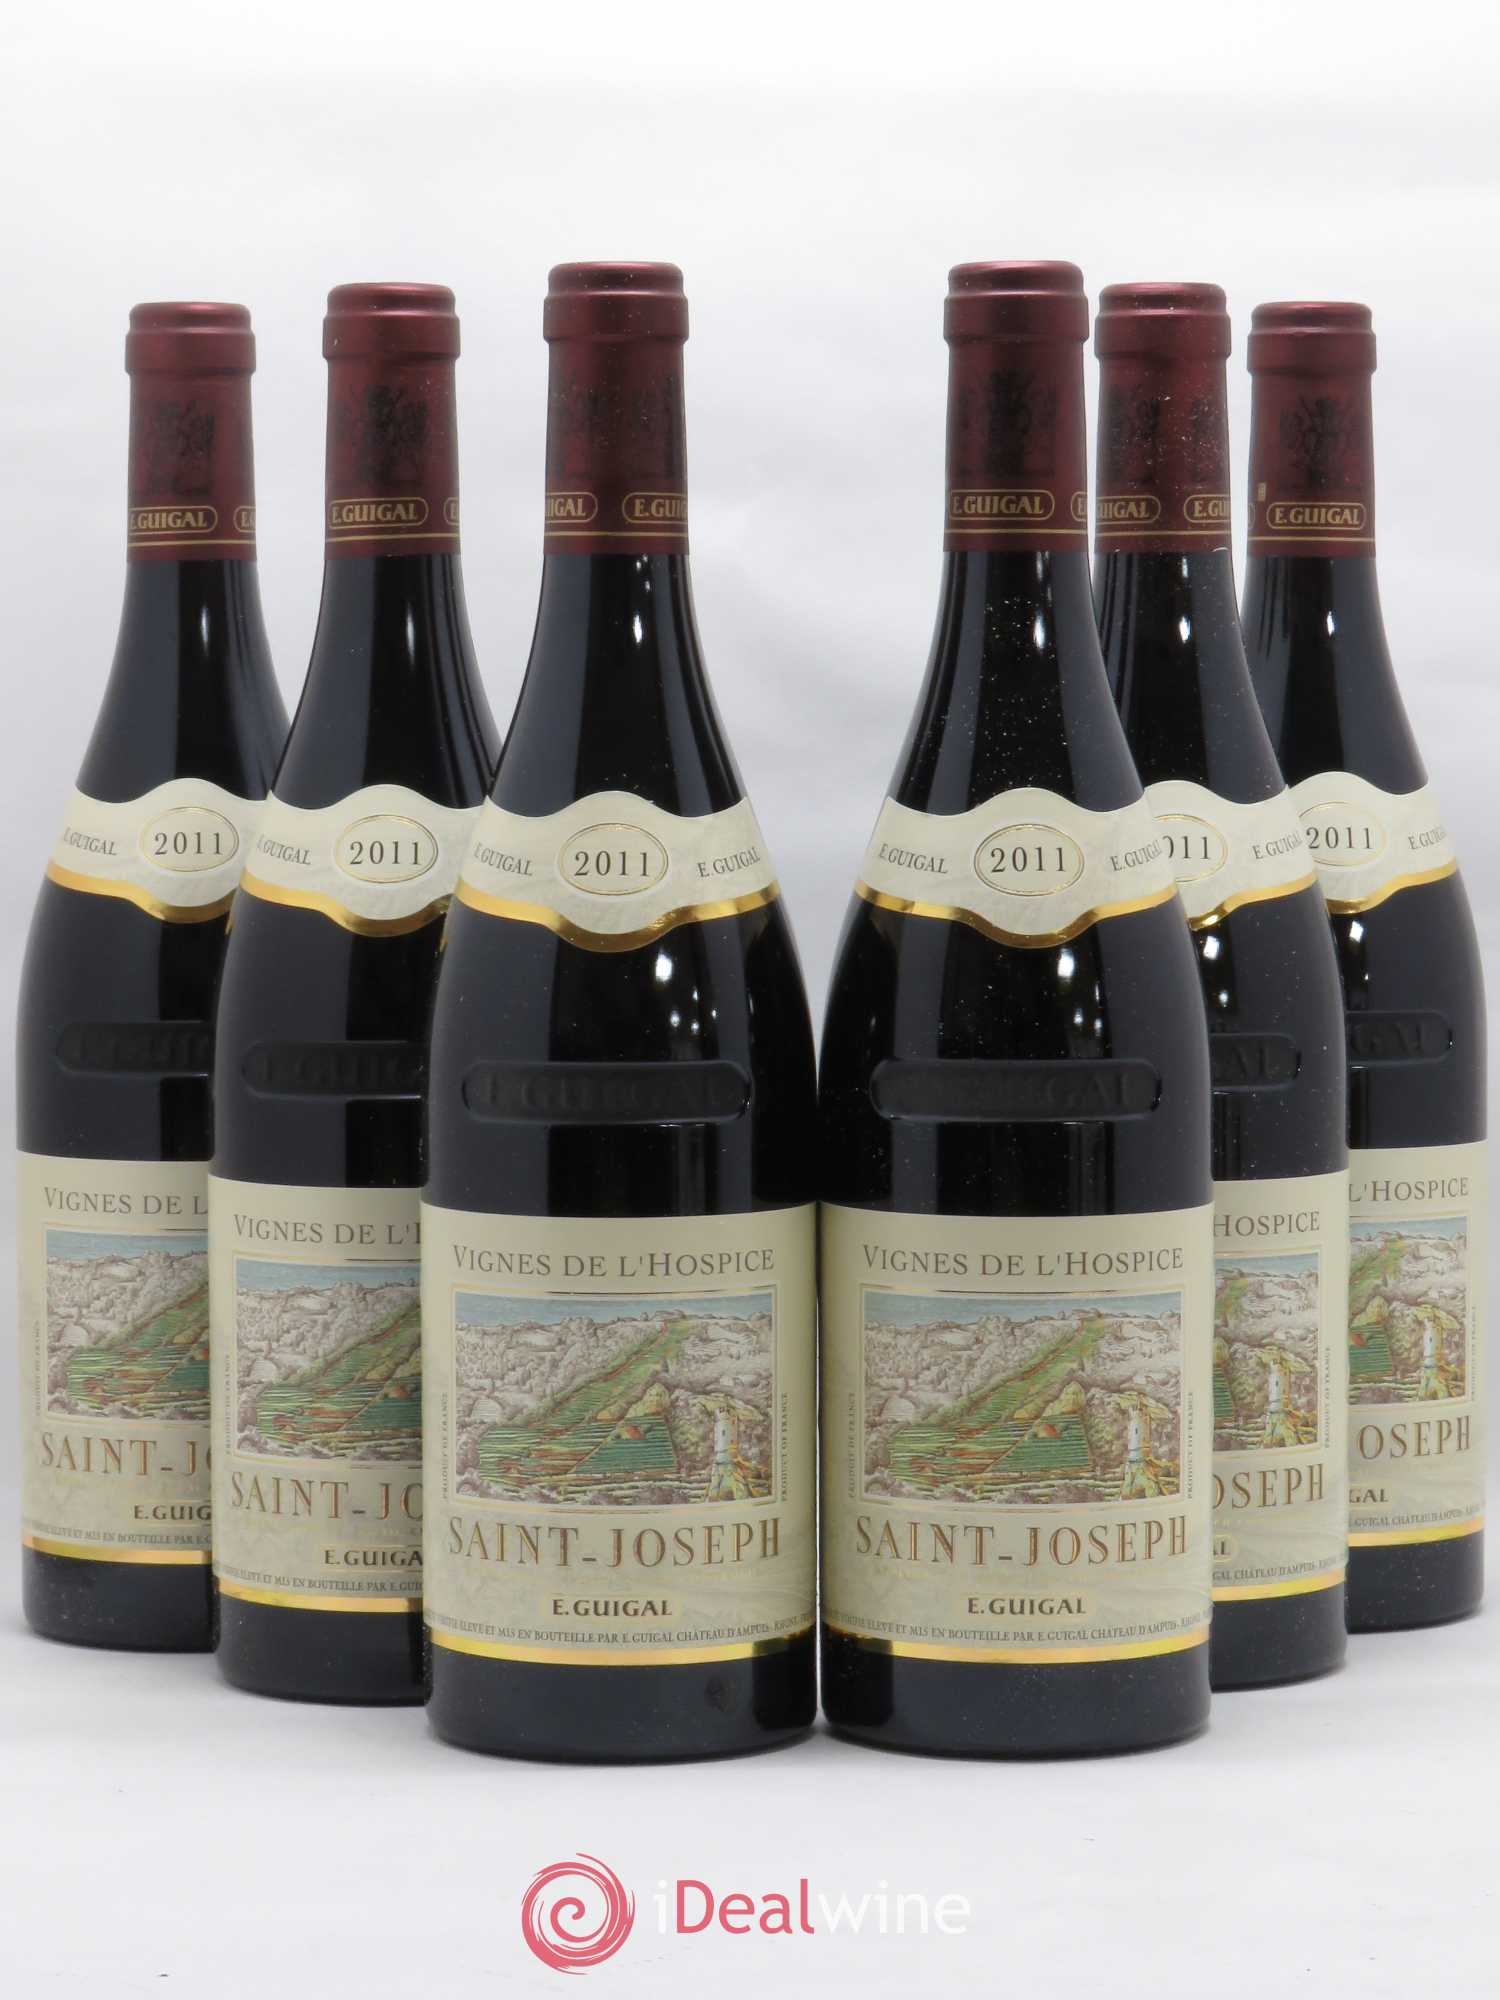 Saint-Joseph Vignes de l'Hospice Guigal  2011 - Lot of 6 Bottles